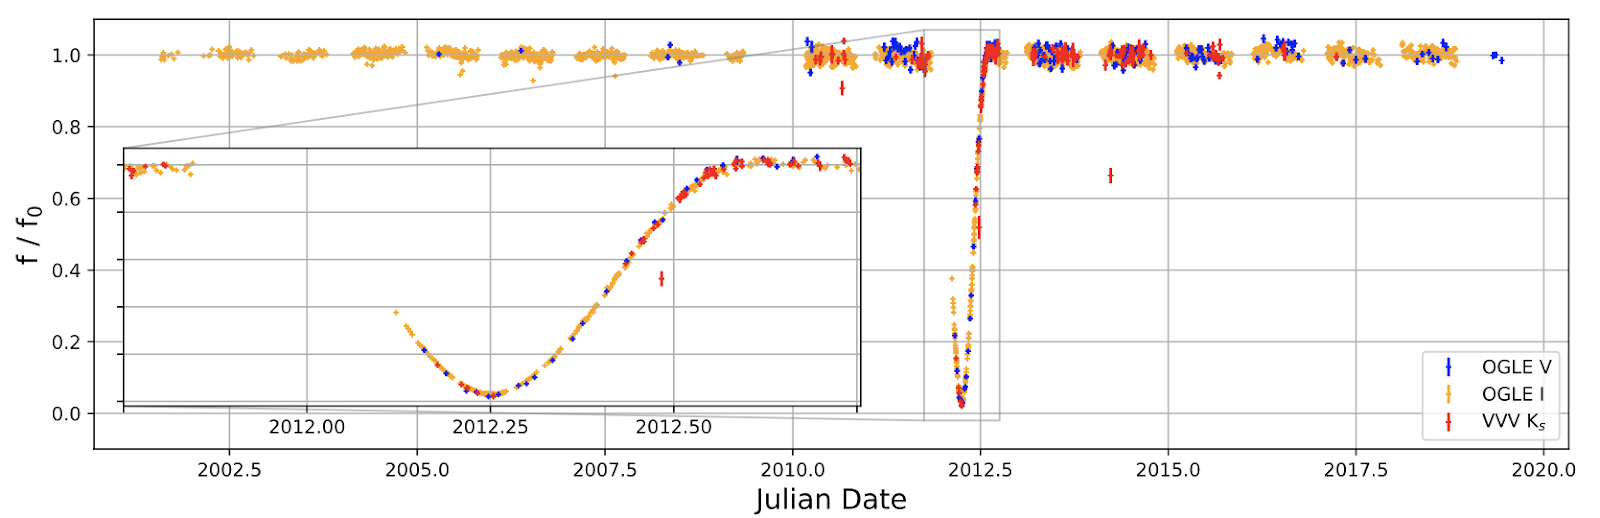 Plot shows orange, blue and red points representing I, V and Ks band flux of the star from 2002 to 2020. All points have values around 1 from 2002 to 2012 and 2013 to 2020. Between 2012 to 2013, there is a smooth decline to 0.03 and a symmetric rise back to 1.